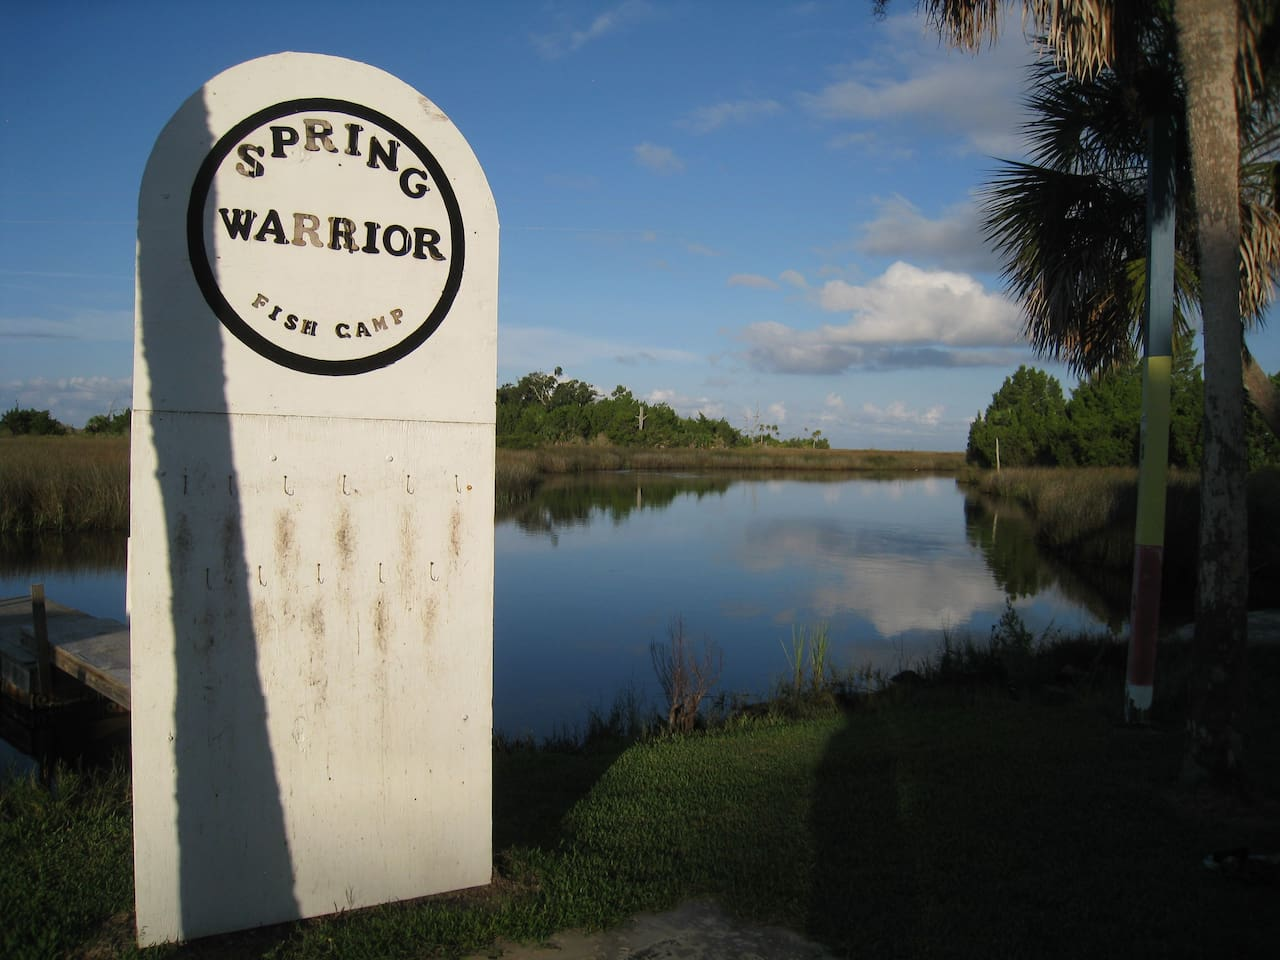 Spring warrior fish camp lodge houses for rent in perry for Spring warrior fish camp